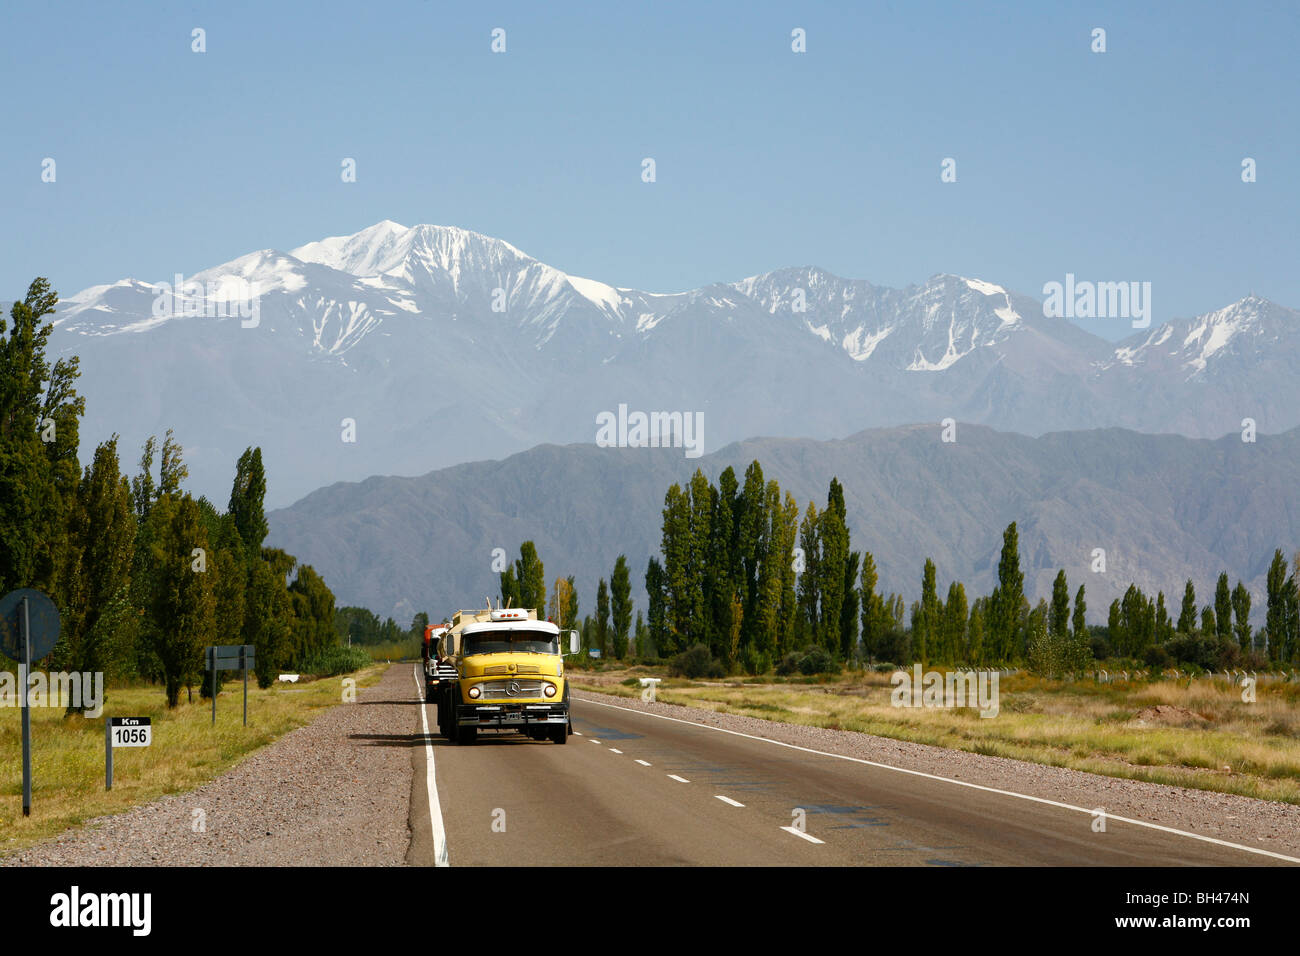 Truck on a road with the andes Mountains in the background, Mendoza, Argentina. - Stock Image